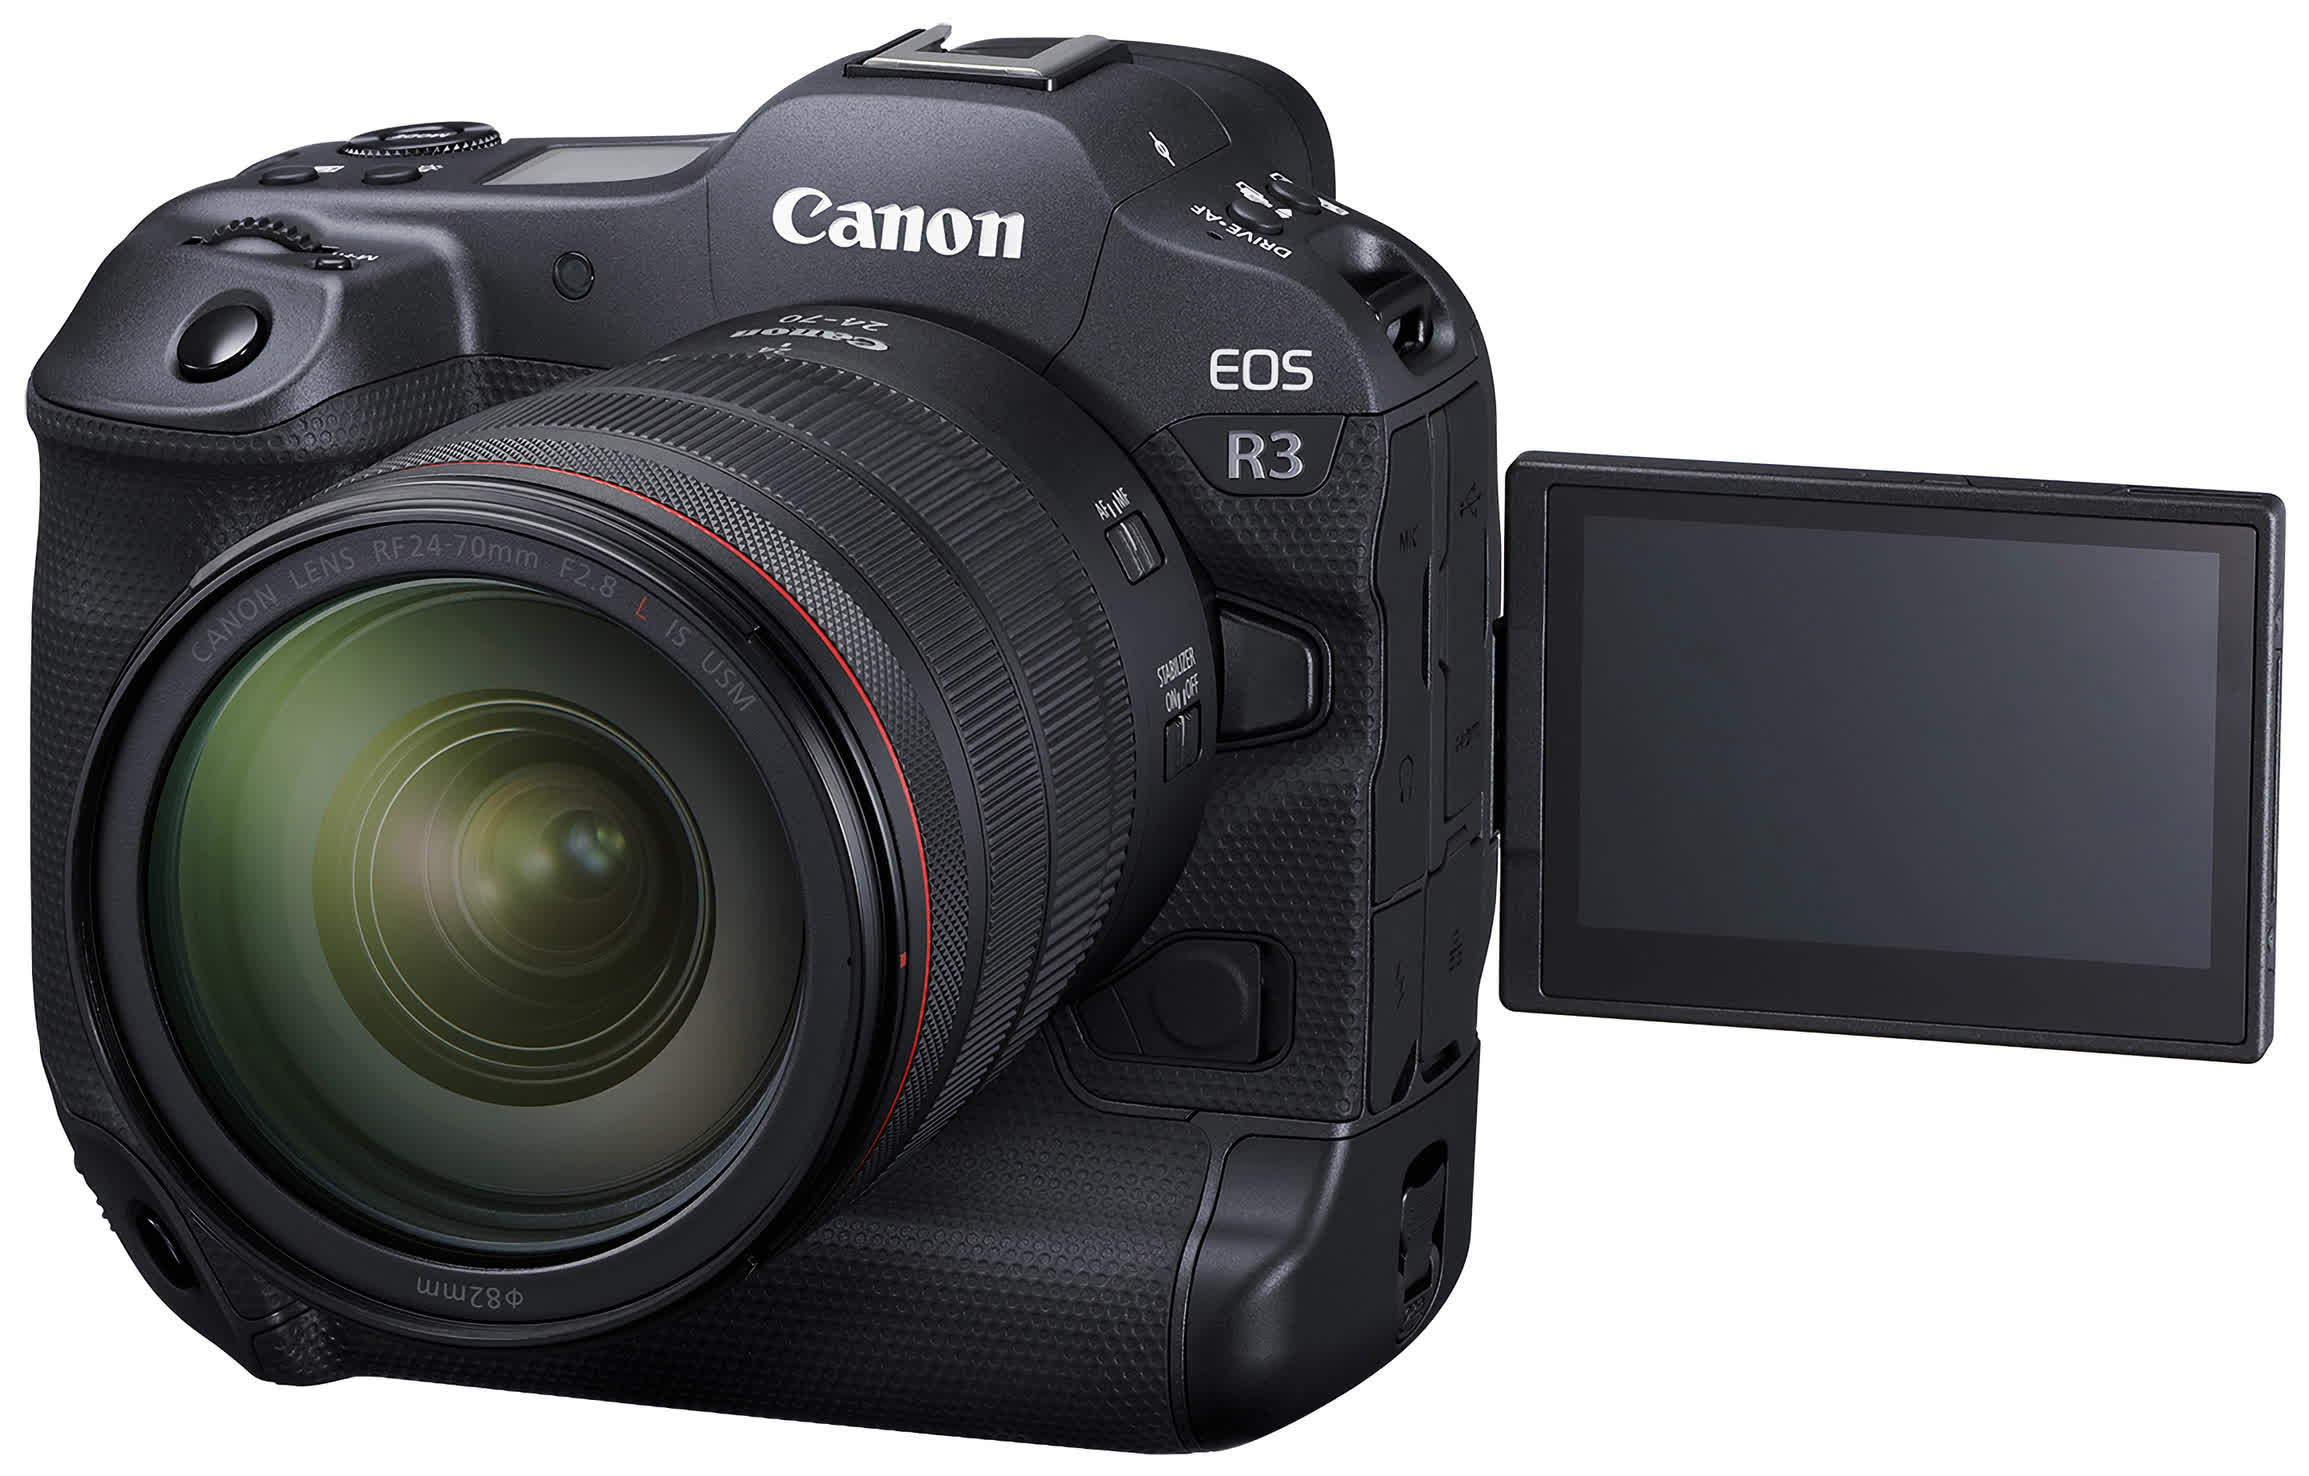 Canon's $6,000 EOS R3 can focus on a subject by tracking your eye movement